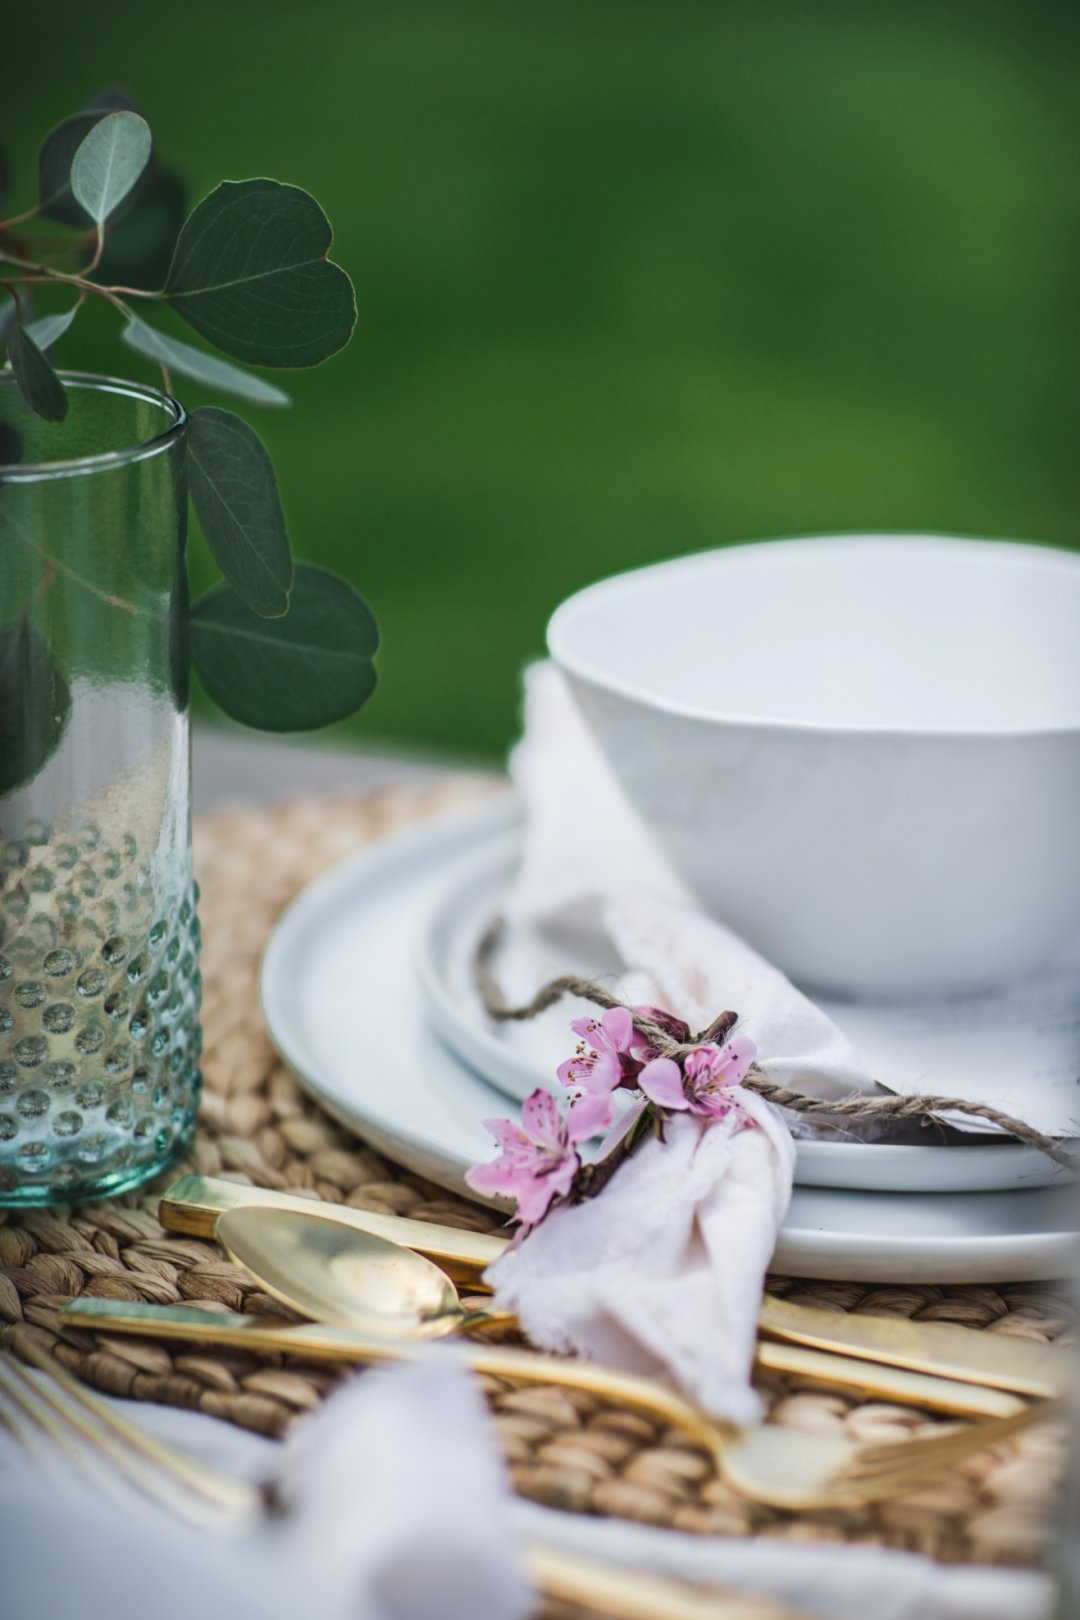 Close up of bowl and plates with silverware and glassware, along with a napkin tied with a flower